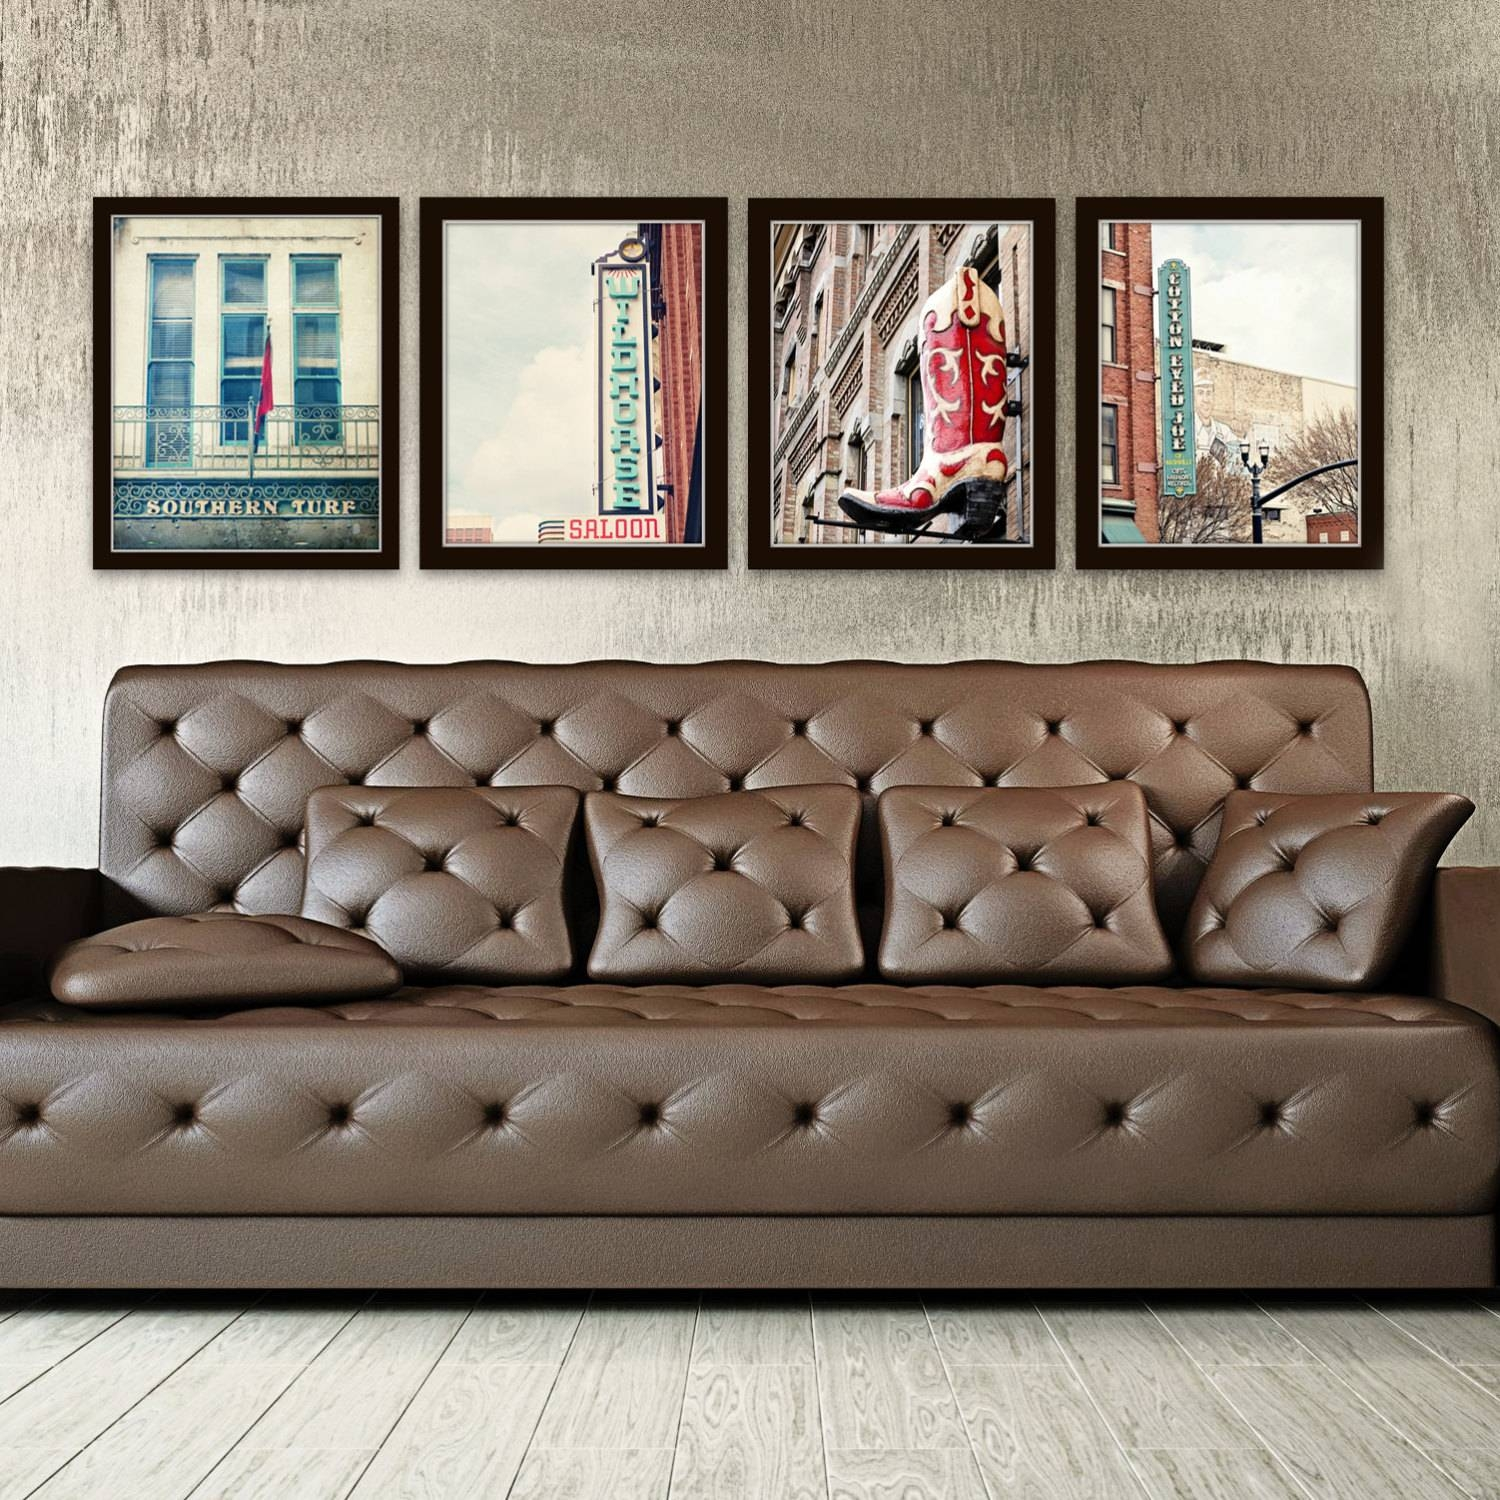 Nashville Wall Art Industrial Decor City Photography Set Of 4 With Regard To 2018 Industrial Wall Art (Gallery 2 of 15)